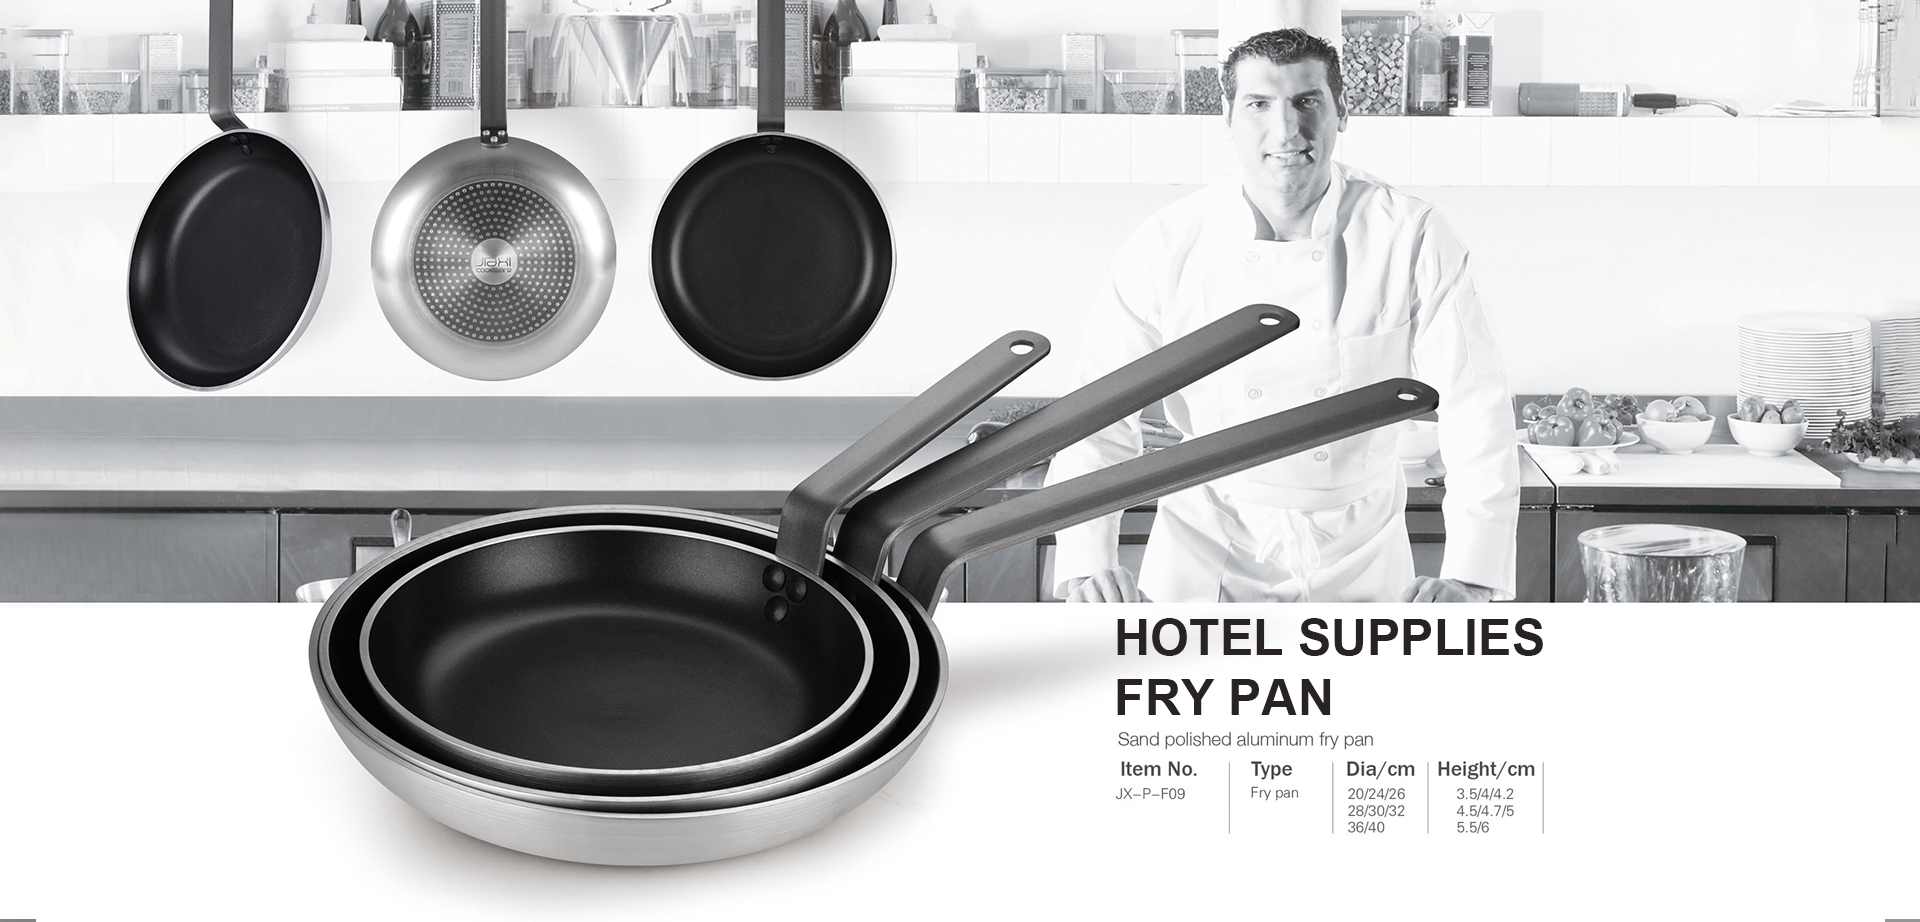 Hotel Supplies Fry Pan